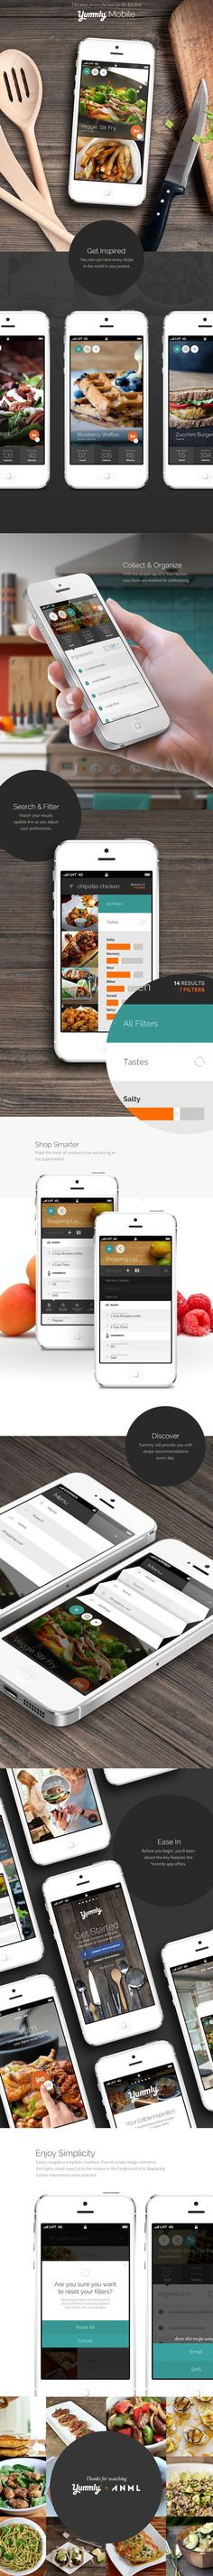 1 Mobile App Design Inspiration – Yummly (FREE – available on app store) – Bence Bohati Mobile App Design Inspiration – Yummly (FREE – available on app store) Yummly Mobile – this recipe app is AWESOME. I use it all the time. Web Design, Game Design, Design Sites, App Ui Design, User Interface Design, Flat Design, Graphic Design, Web Mobile, Mobile App Ui